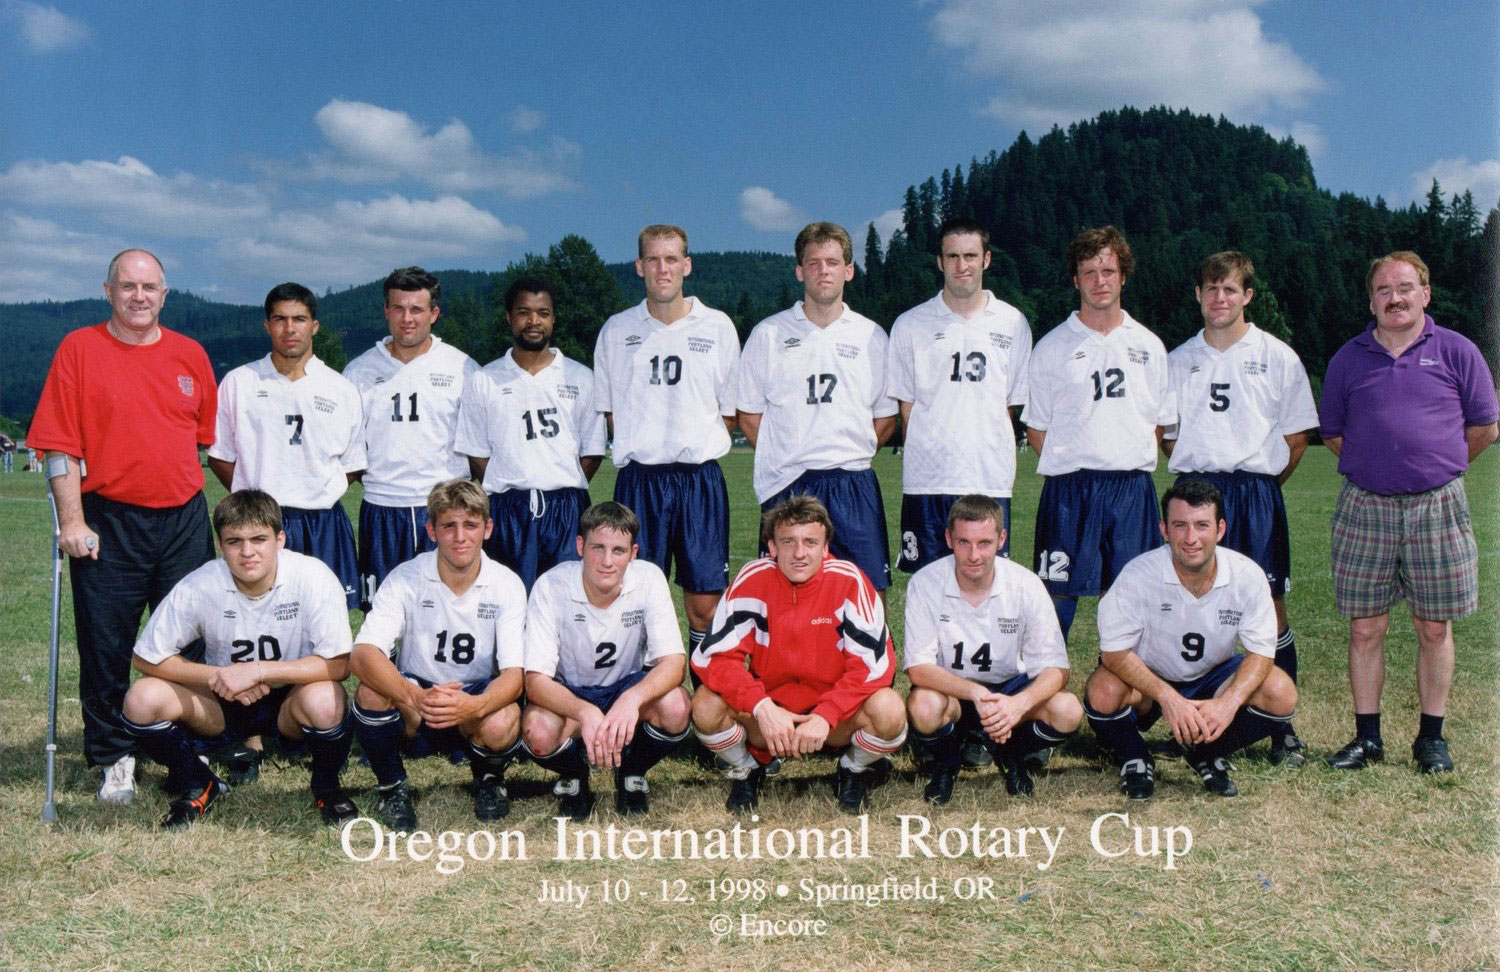 1998 Oregon International Rotary Cup